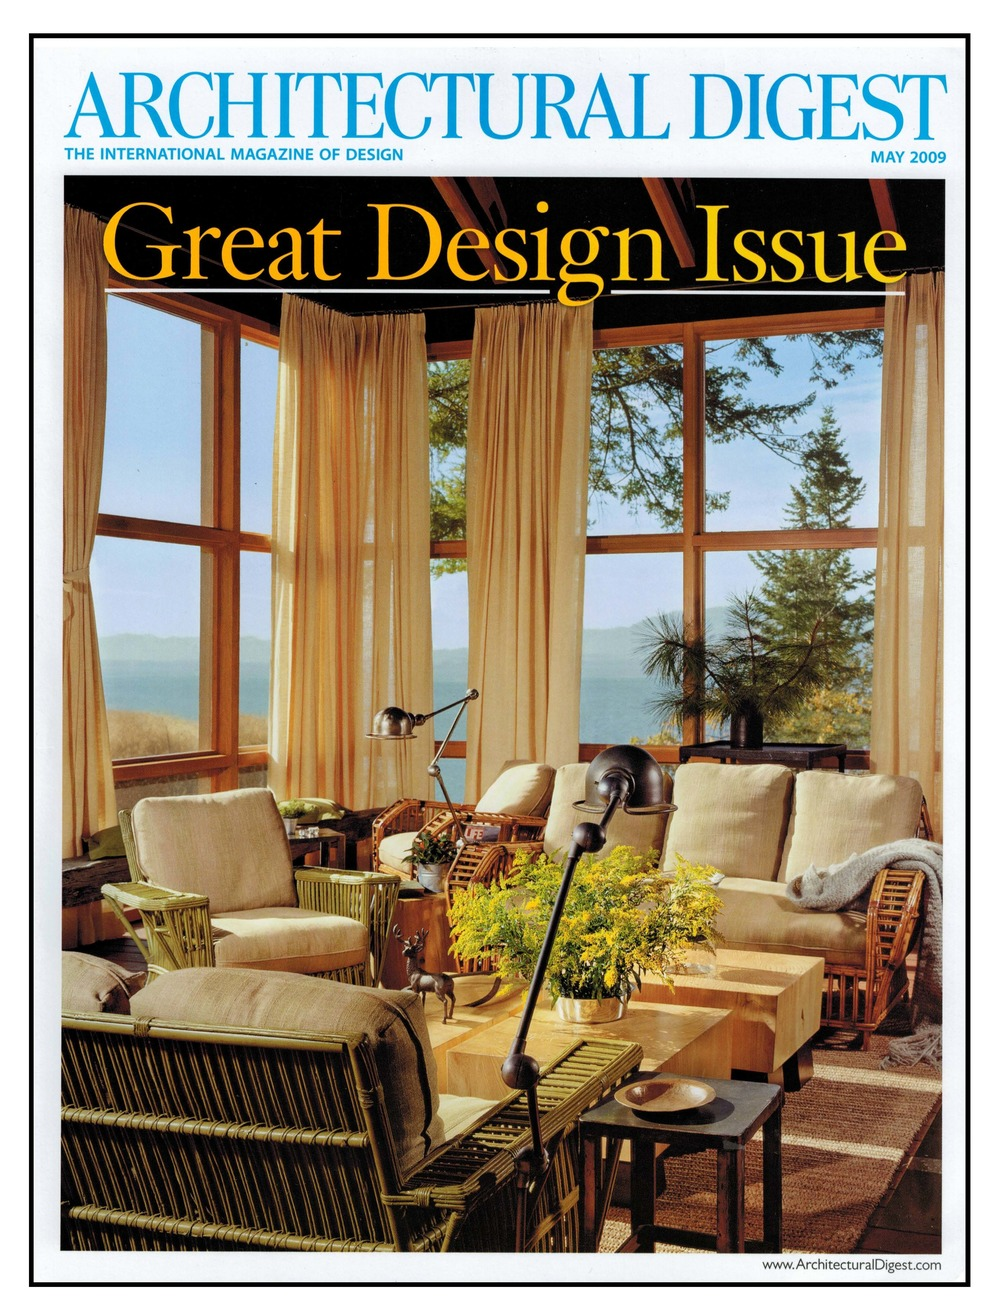 1 Architectural Digest-May 2009.jpg